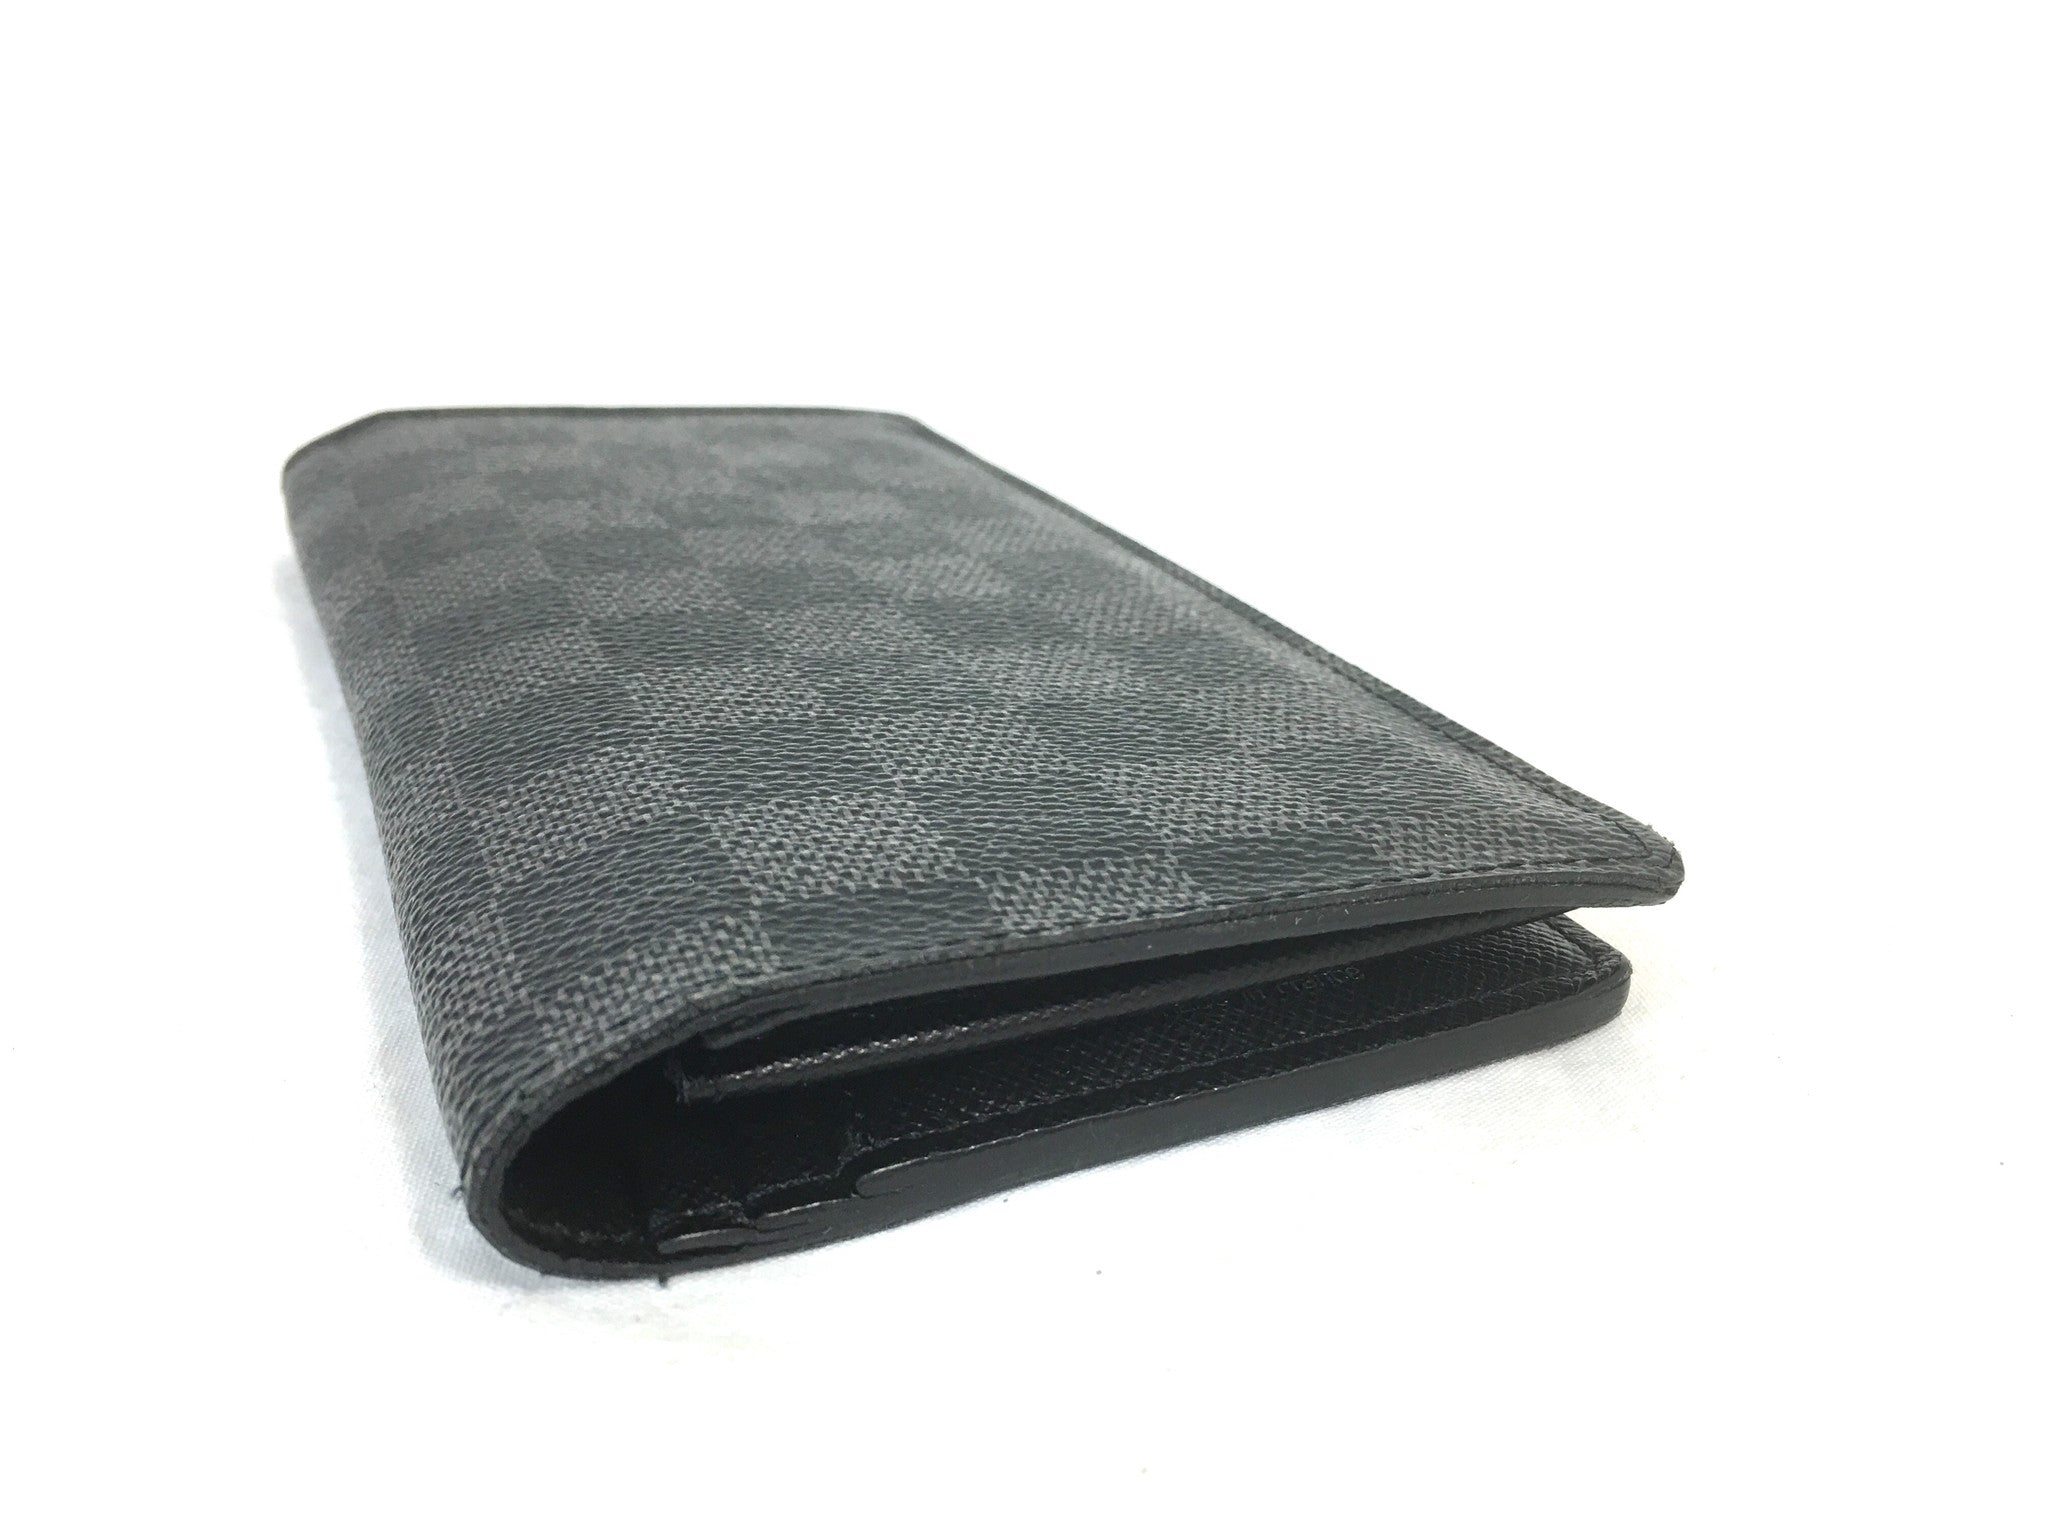 LOUIS VUITTON Damier Graphite Wallet